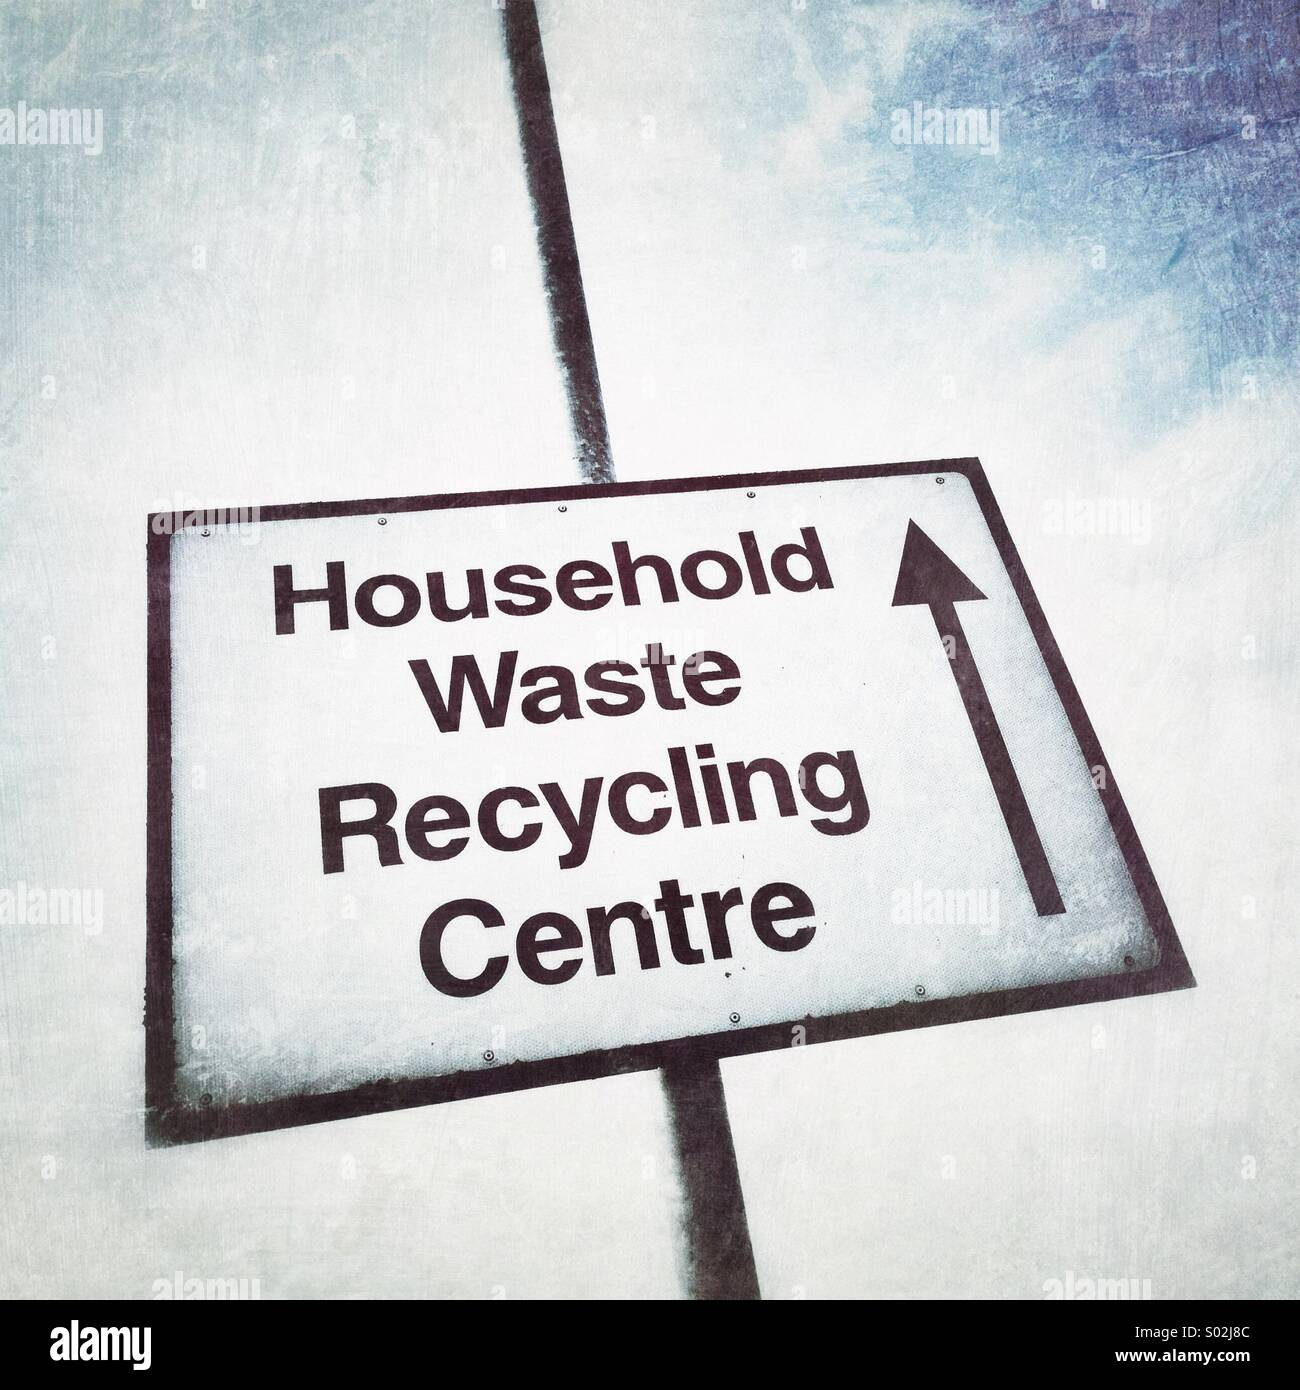 Household waste recycling centre sign - Stock Image